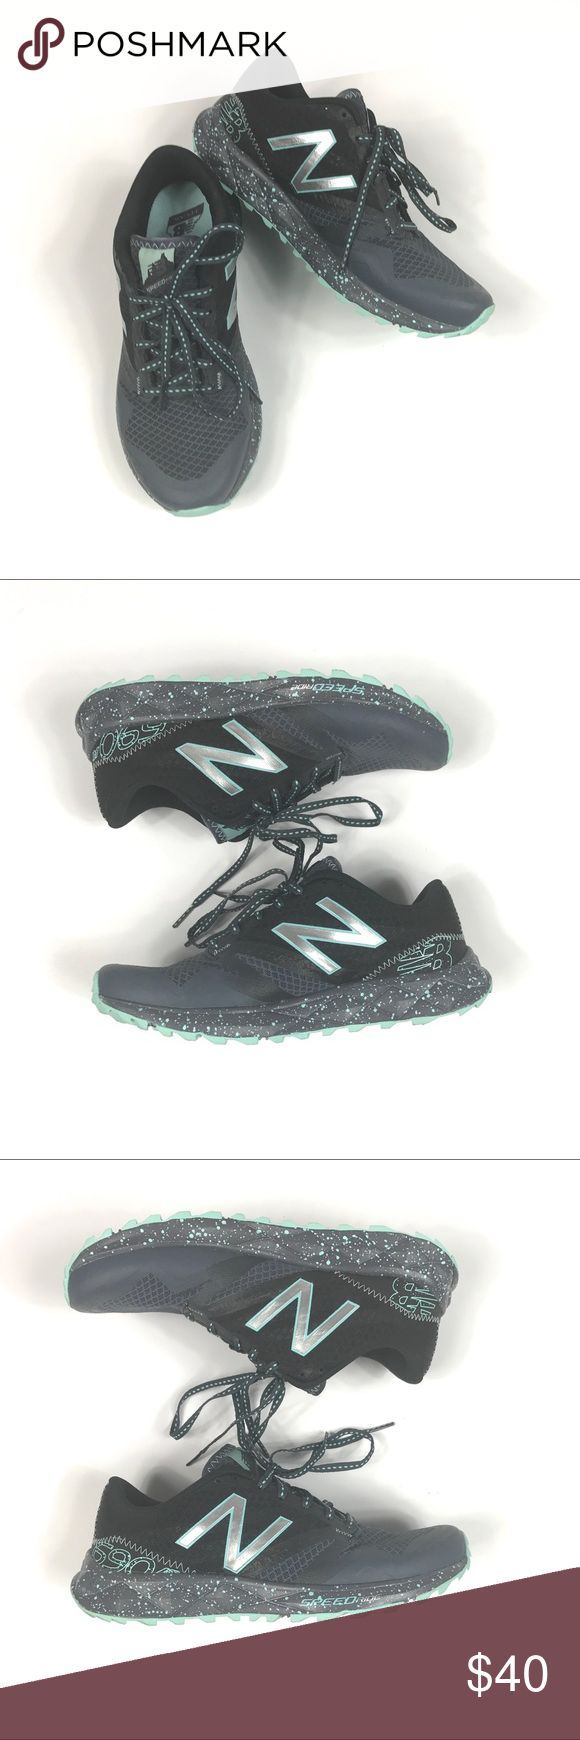 New Balance Trail Running Shoes Size 7 Gray Women's Size 7  Used once. See photos for actual pair! Soles a little dirty from the one use, but otherwise in like new condition.  Feel free to ask any questions!   More:  New Balance 690 V1 Grey Teal Trainers  Stay comfortable on the trail in the 669 V1 Trail Walking Shoe from New Balance.Leather and mesh upper in a trail walking shoe style with a round toe;Lace up front;New Balance N detail;TPU overlay;Smooth lining, cushioning insole;ABZORB…